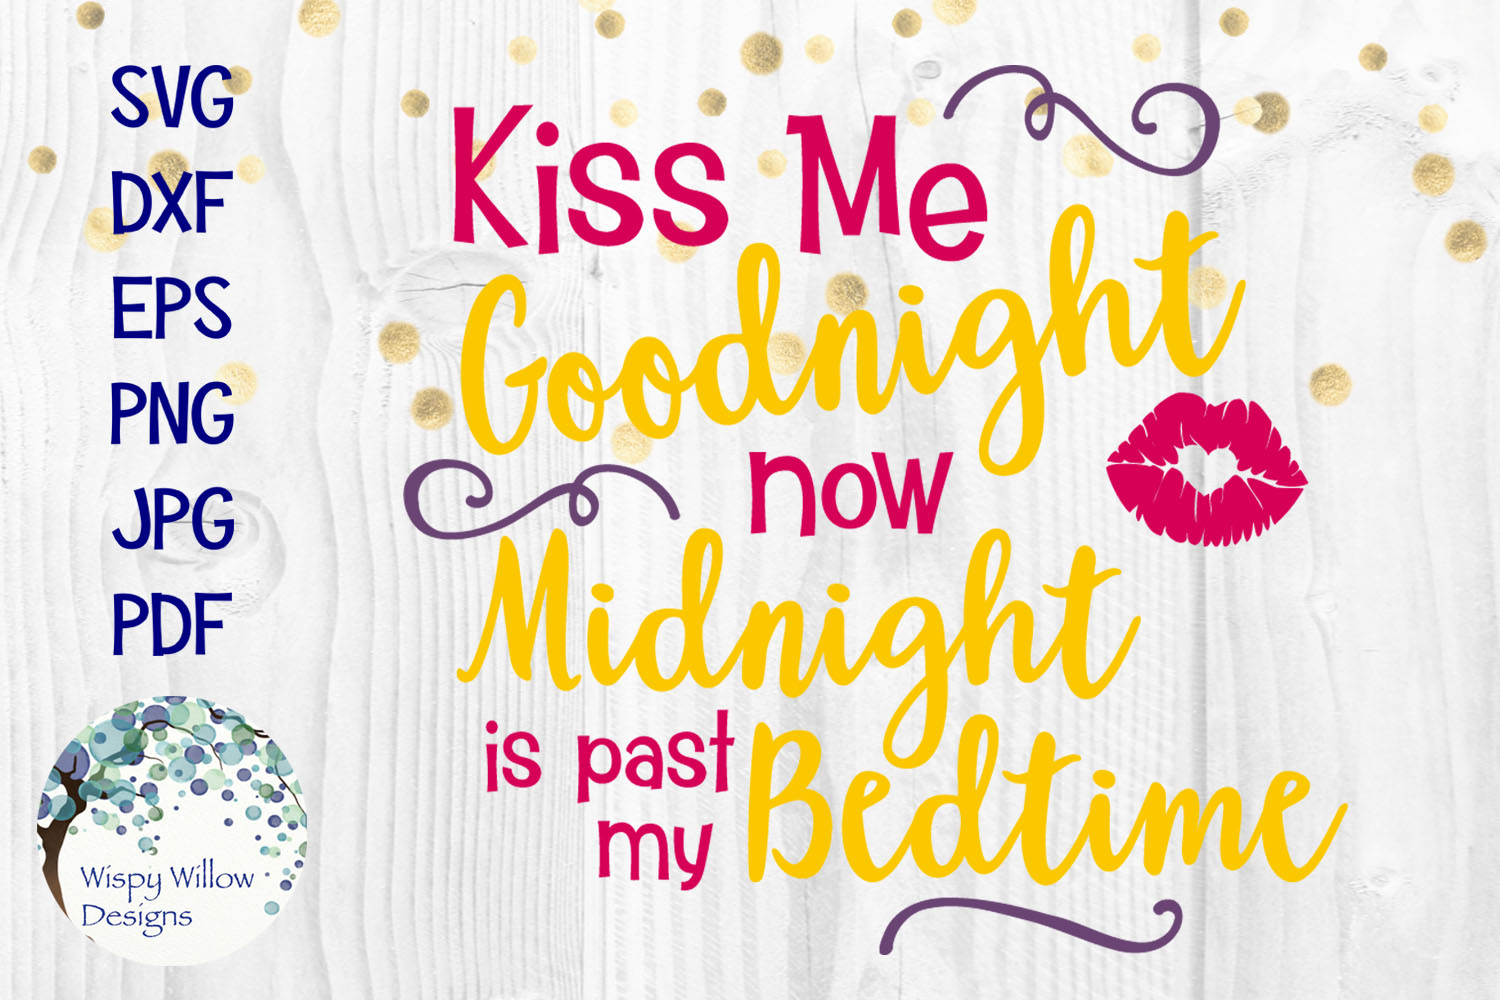 New Year's Eve SVG Cut File Bundle | Kiss Me at Midnight SVG example image 3